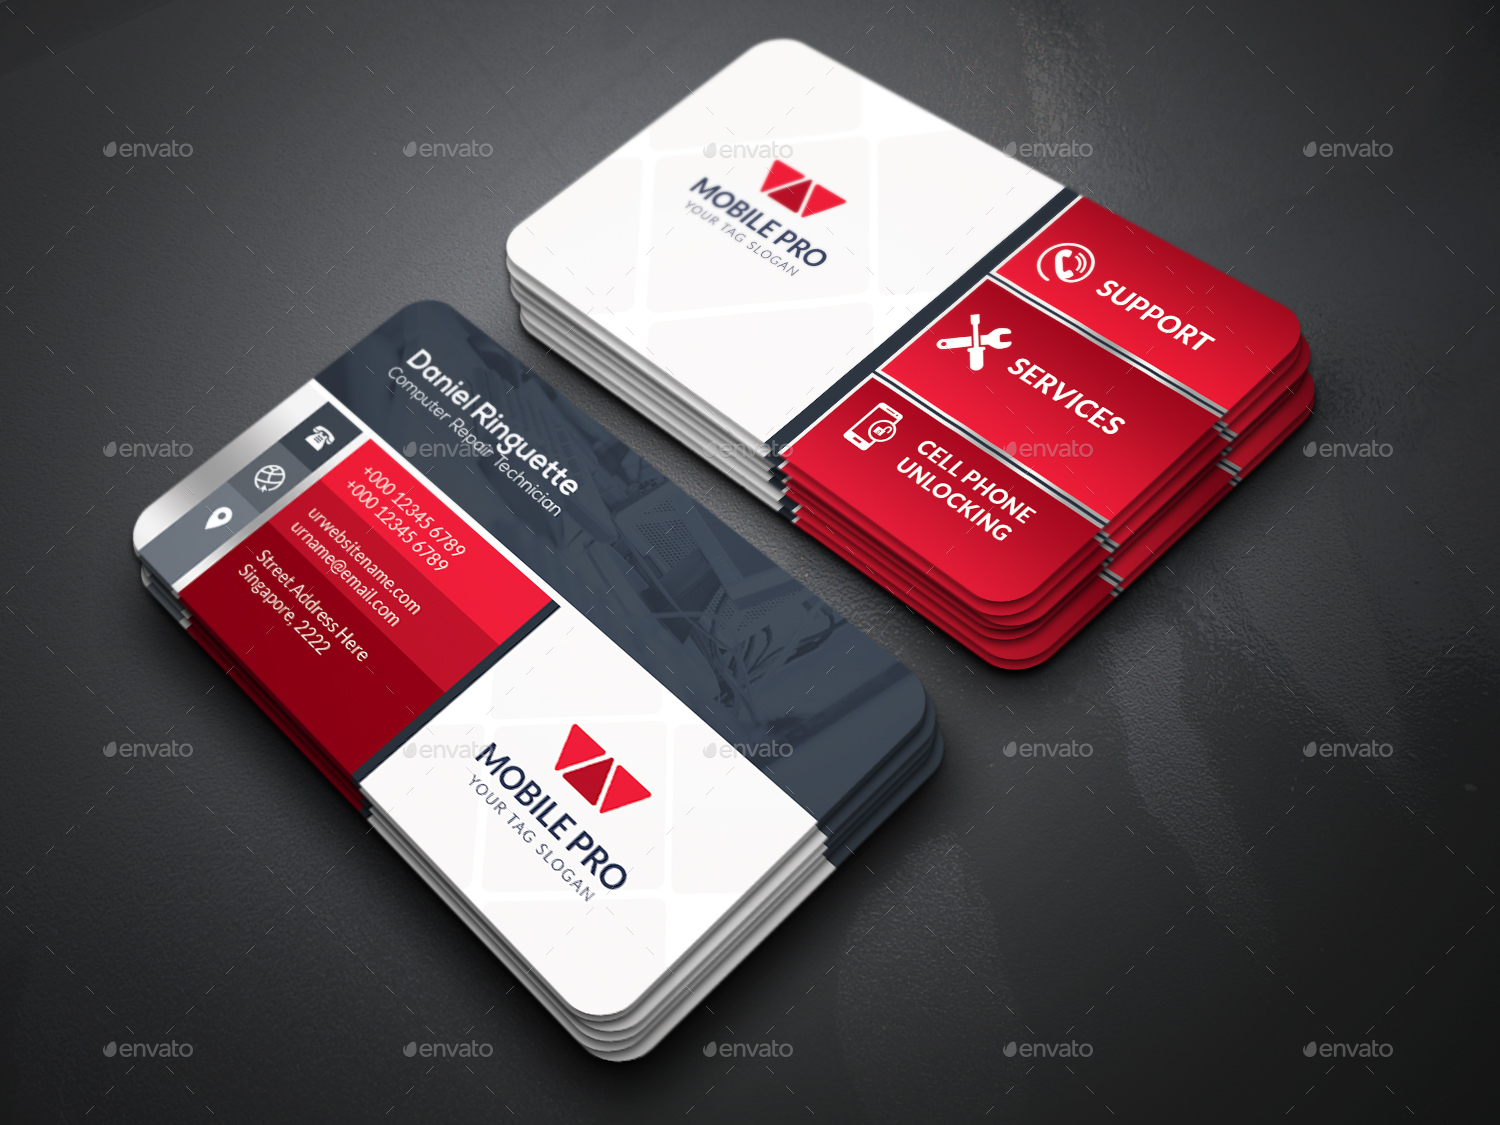 Awesome Business Card Mobile Gallery - Business Card Ideas ...